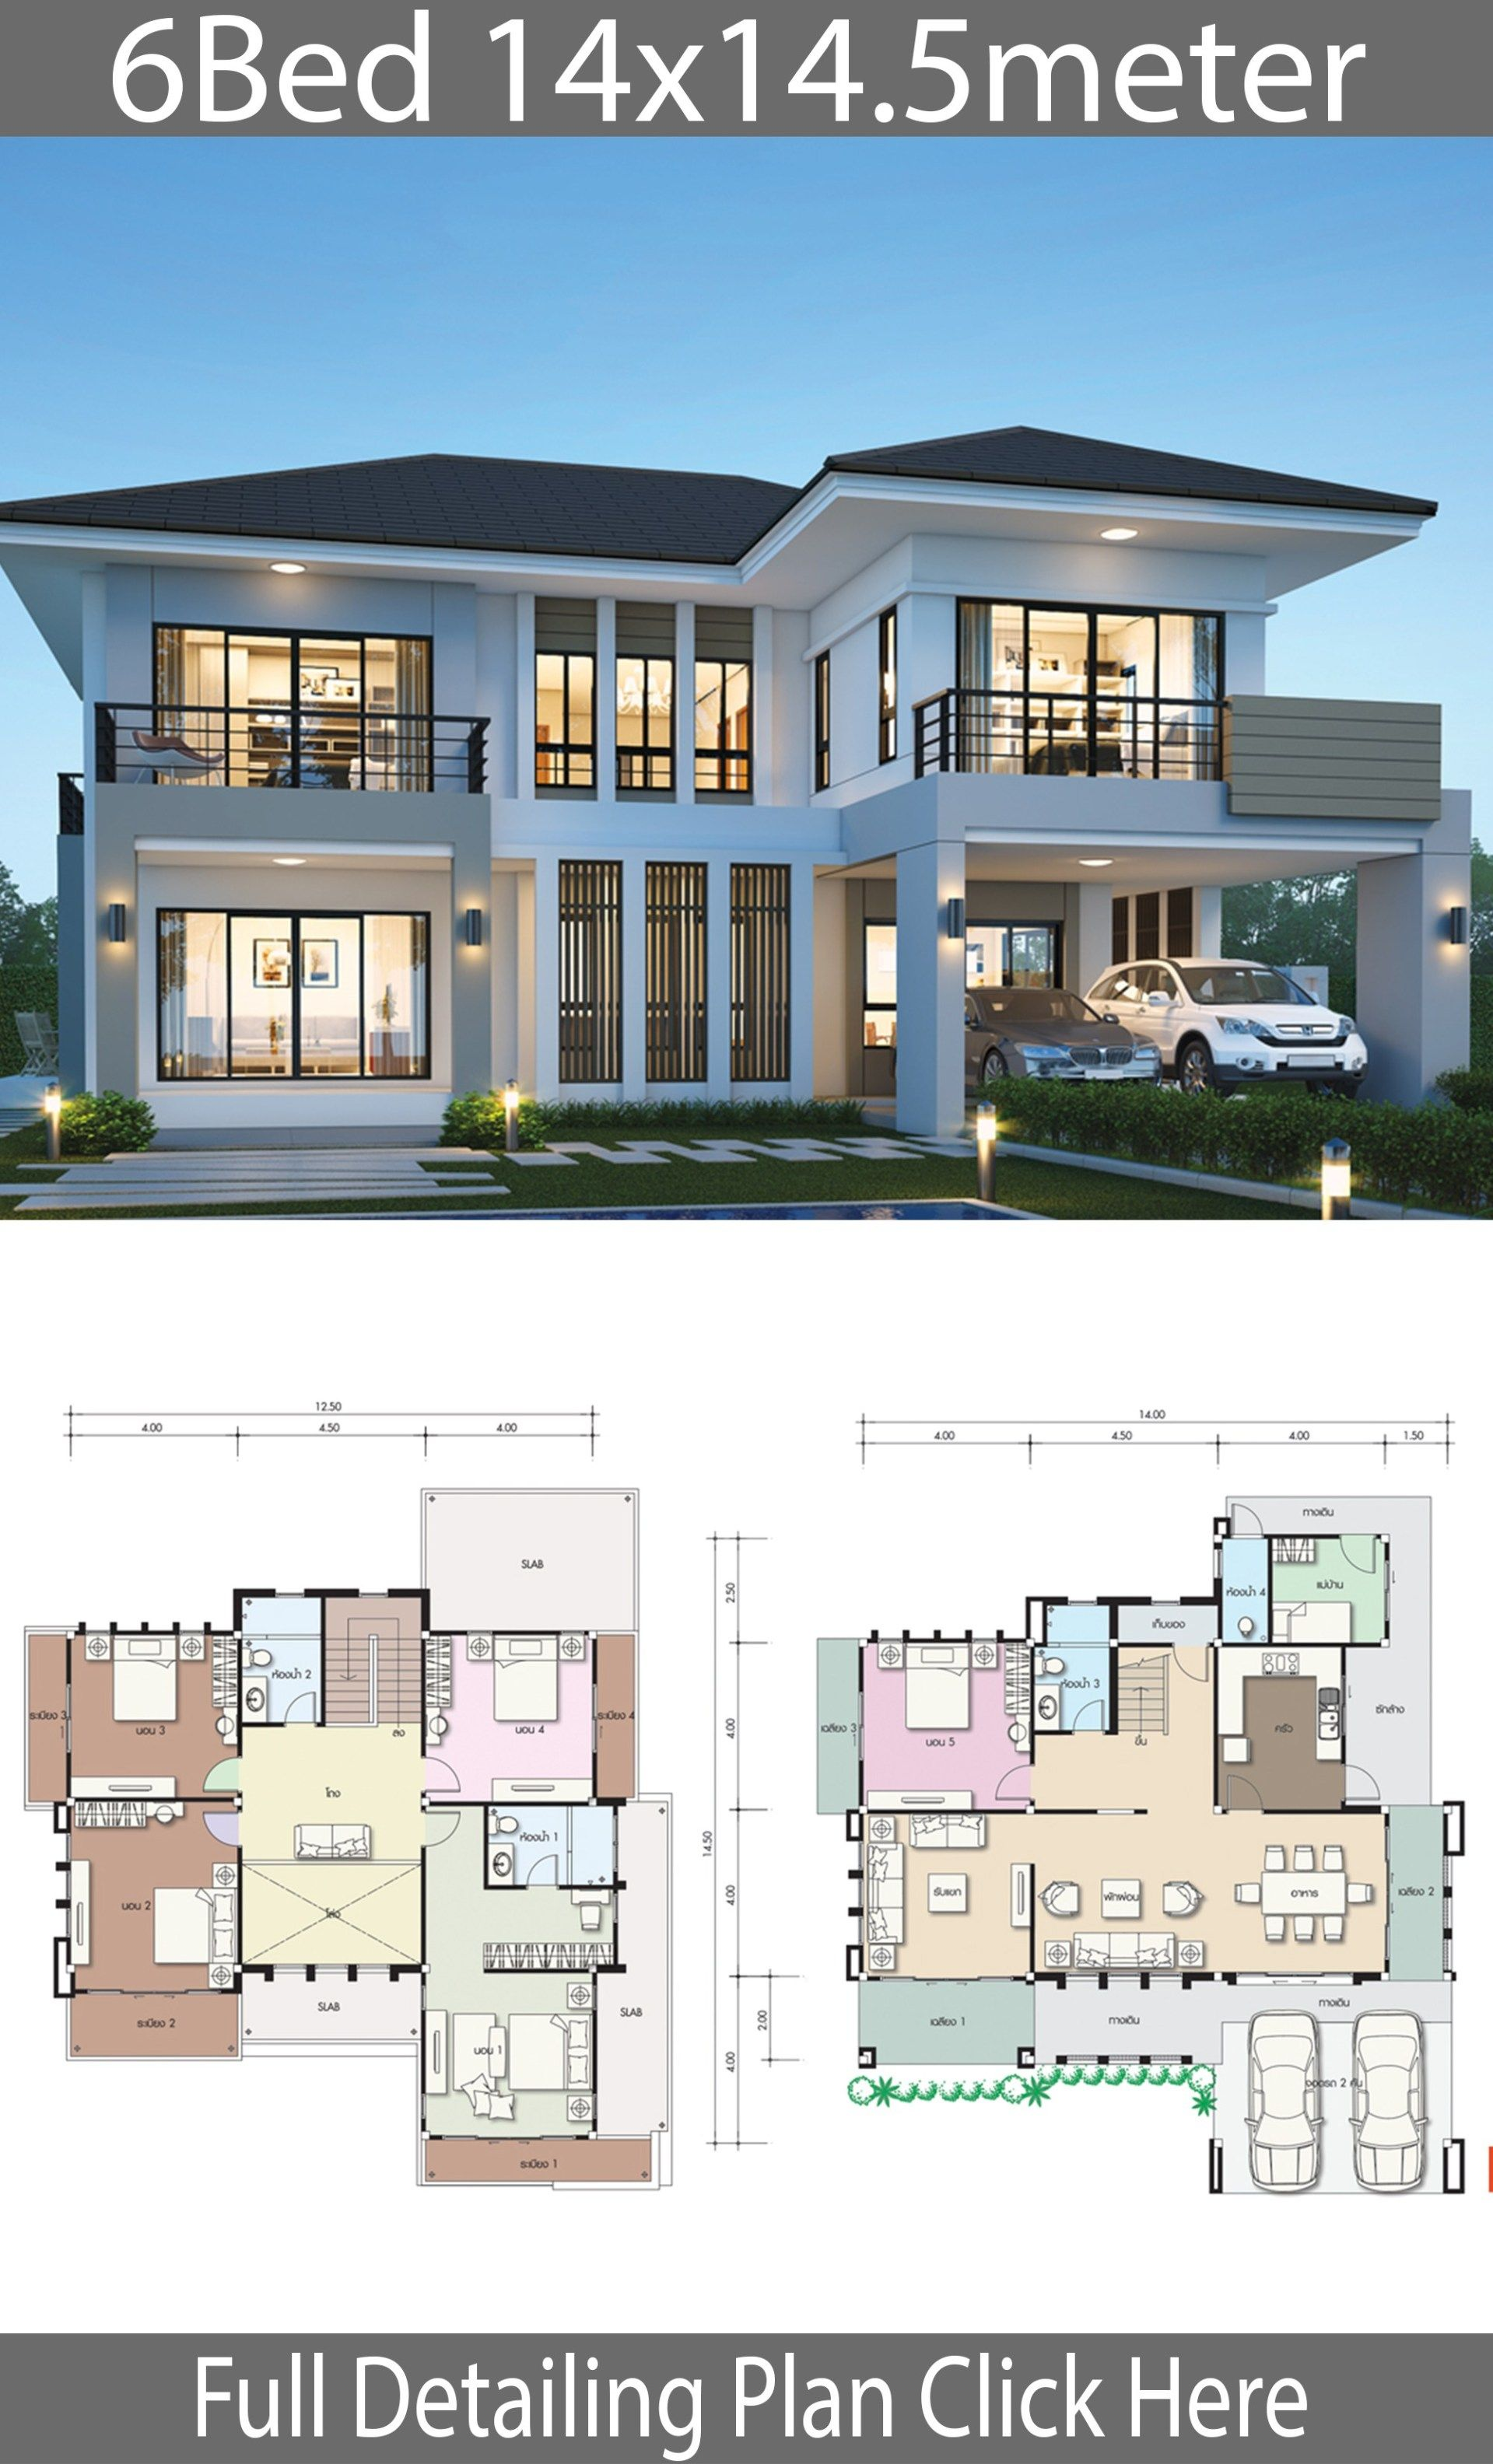 House Design Plan 14x14 5m With 6 Bedrooms Home Ideas Beautiful House Plans House Layout Plans Sims House Plans